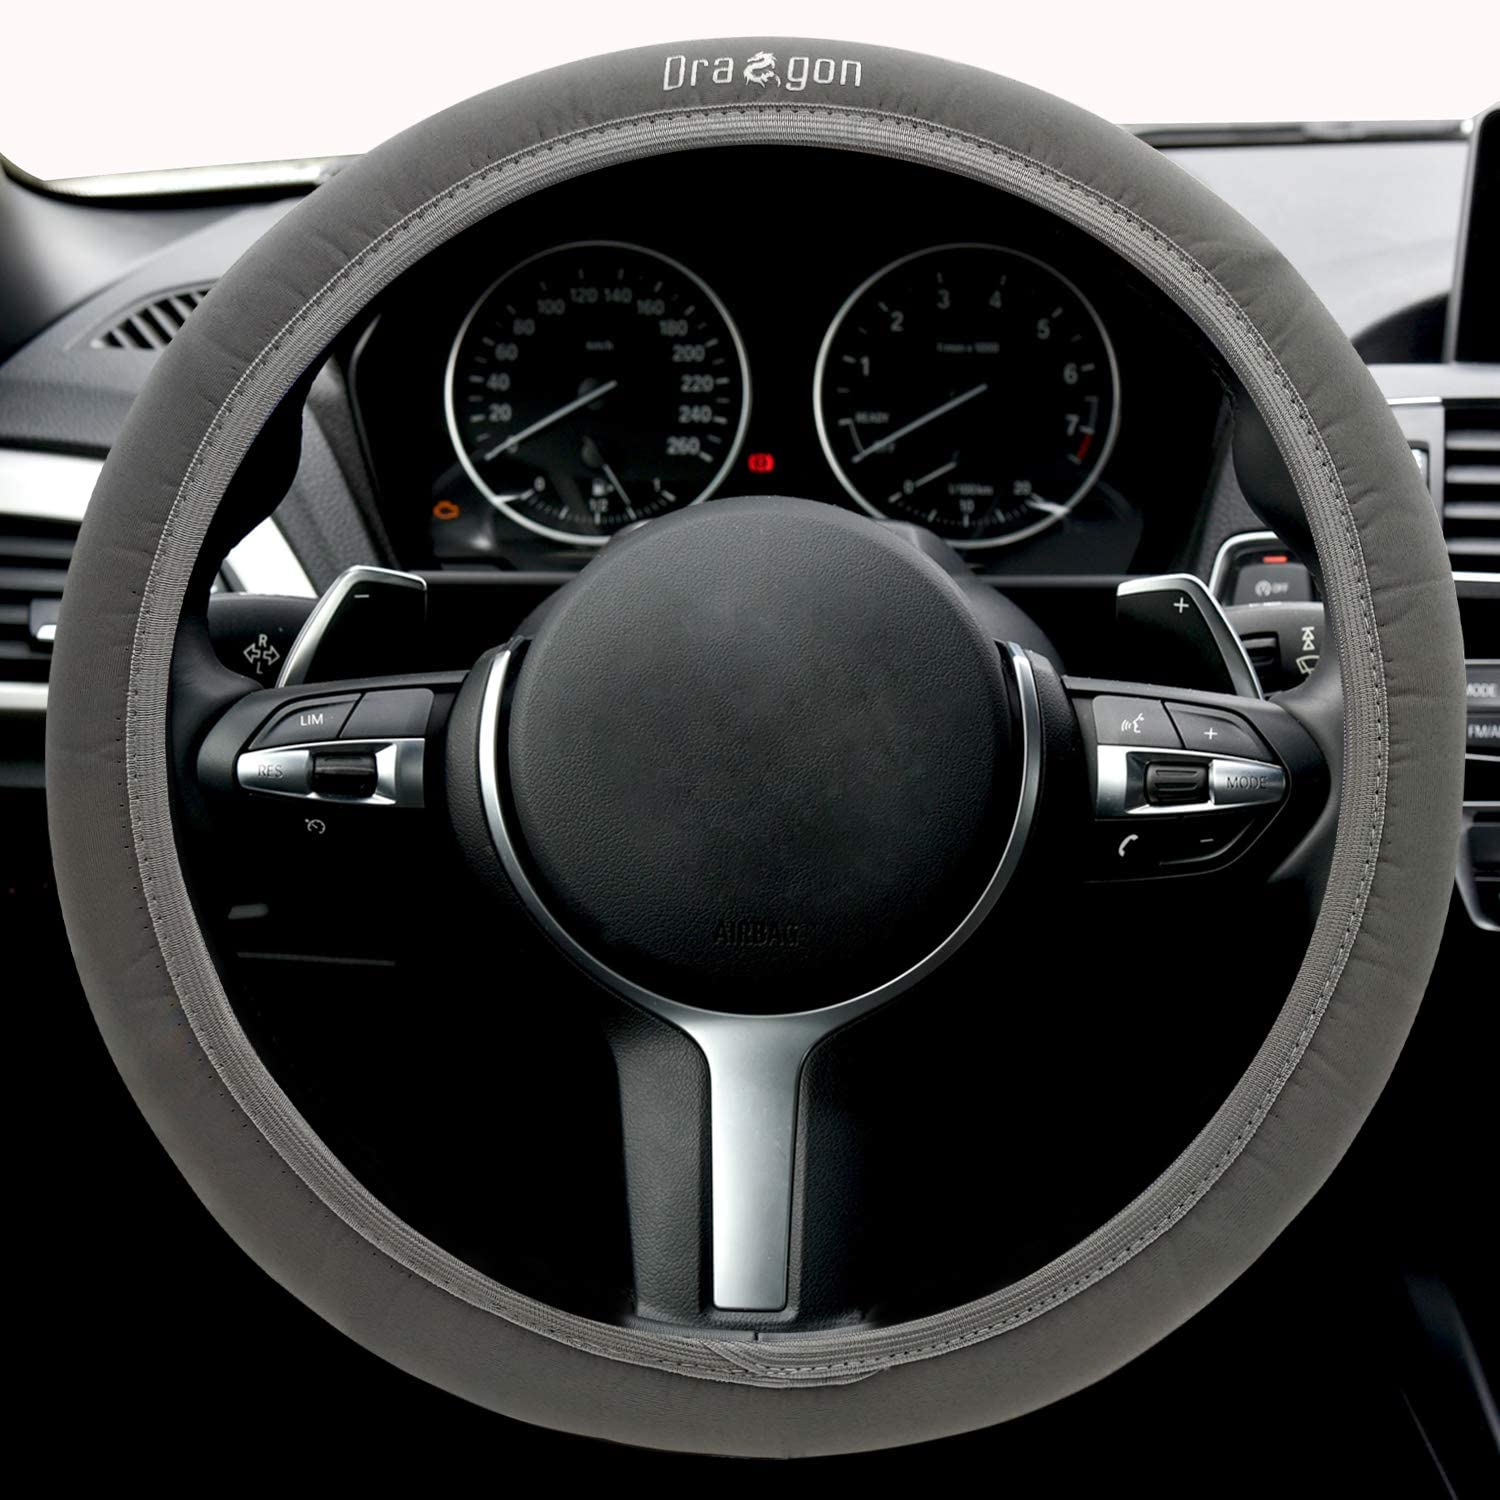 Gray Cloth Steering Wheel Cover,Universal 15 inch Steering Wheel,with Dragon Totem,Anti-Slip,Breathable,Comfortable Touch,Warm in Winter with Nice Package